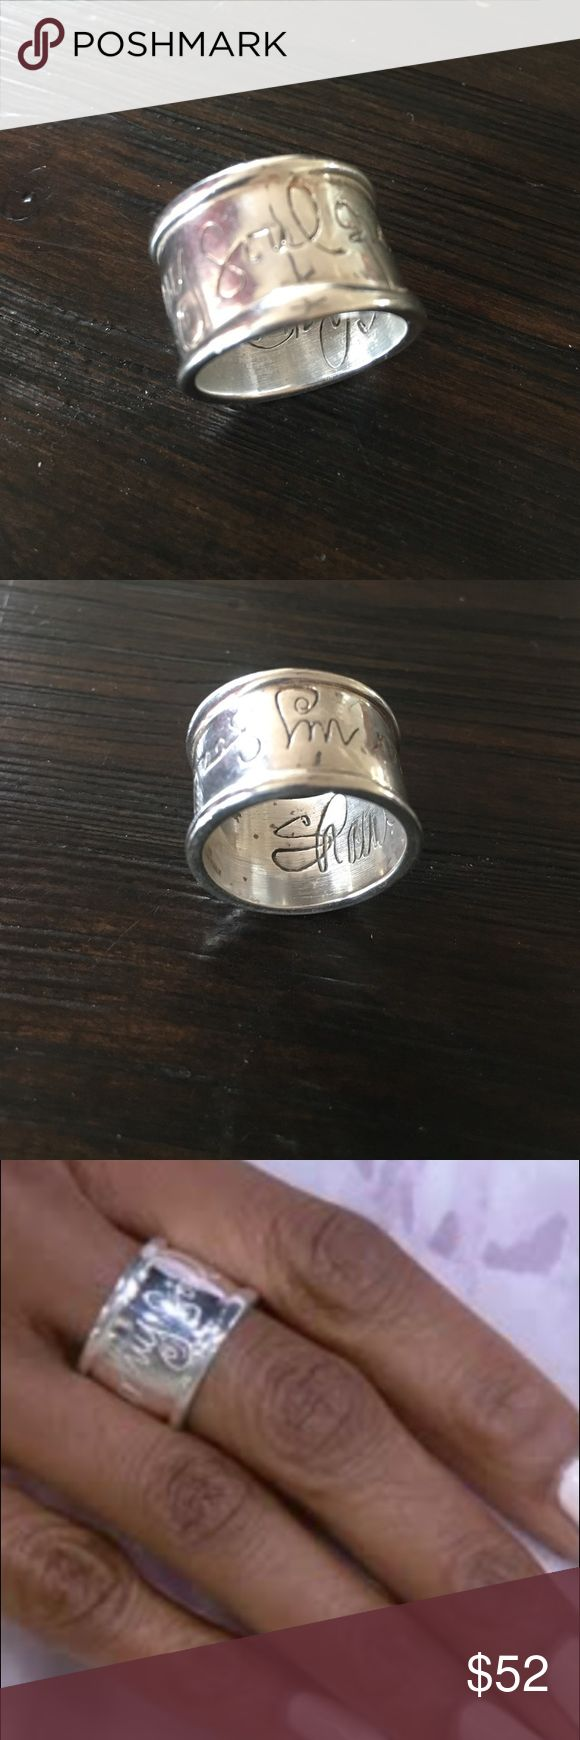 """Hear my soul speak sterling ring Qvc wide sterling band designed by Shawn Killinger, sells for $99.00 and was purchased at QVC.  This ring is sterling sliver and inscribed with the phrase """"hear my soul speak"""" and Shawn Killinger signature inside.  The ring is WIDE and this might require you size up. Worn only a few times qvc Jewelry Rings"""